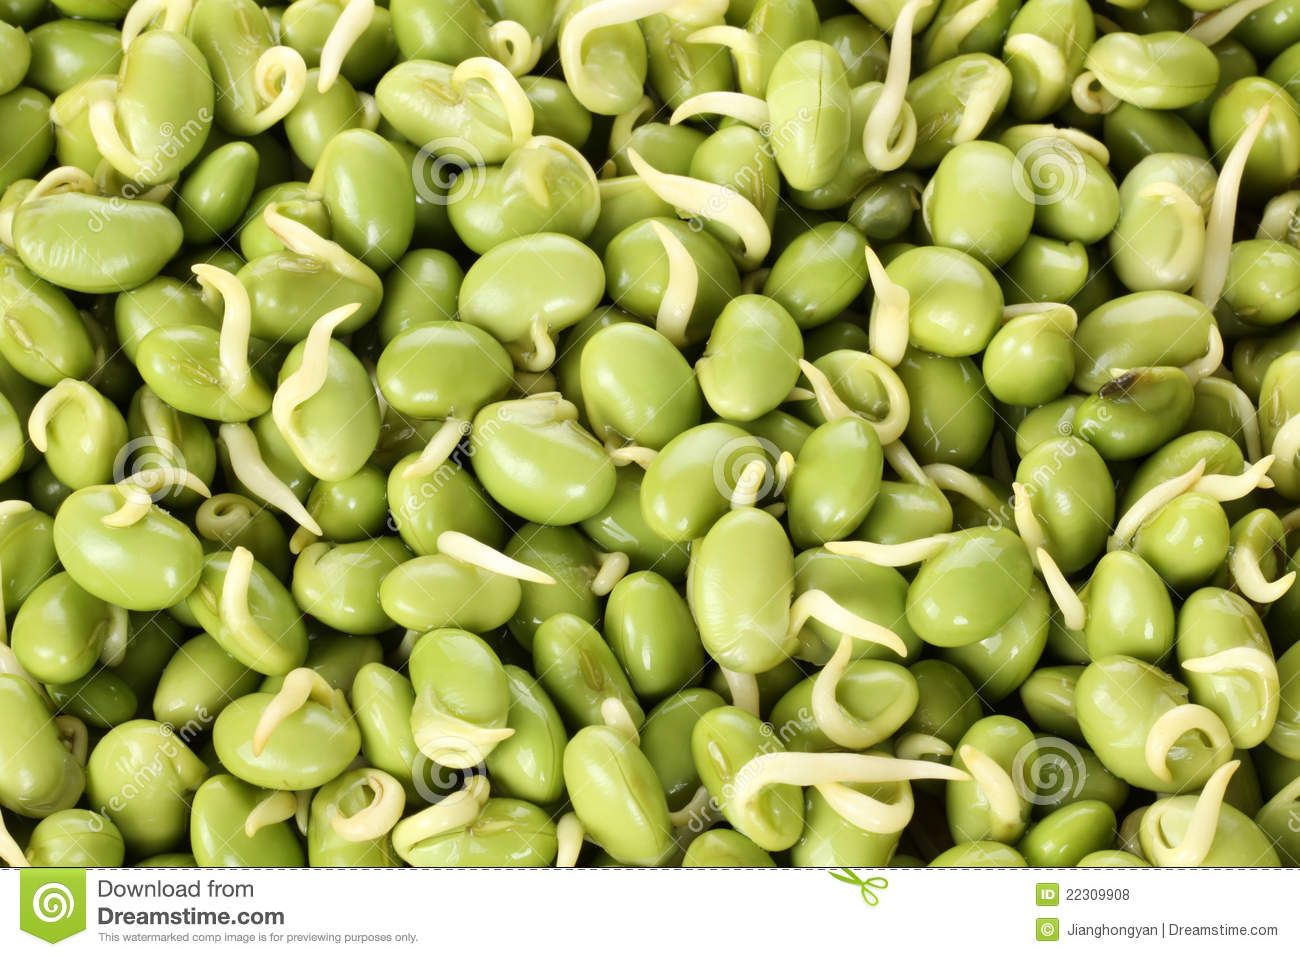 how to make sprouts at home using sprout maker